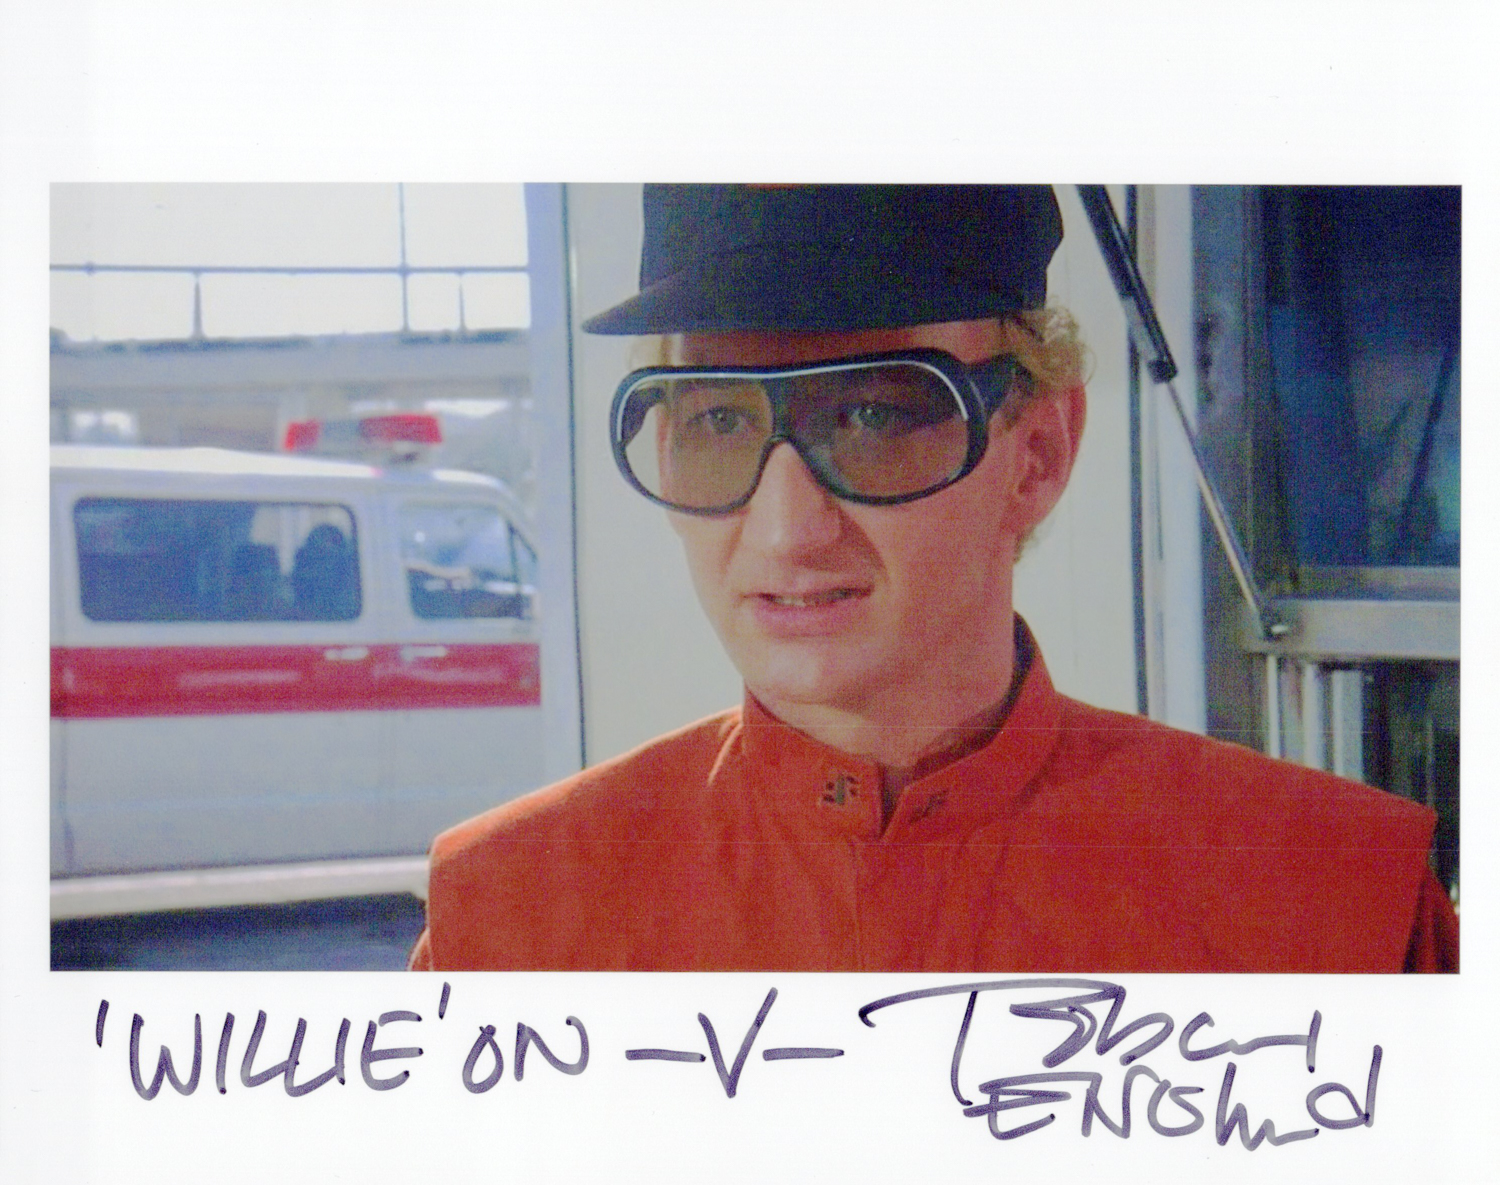 Robert Englund Original Autogramm auf Foto 20x25cm  - V the Visitors